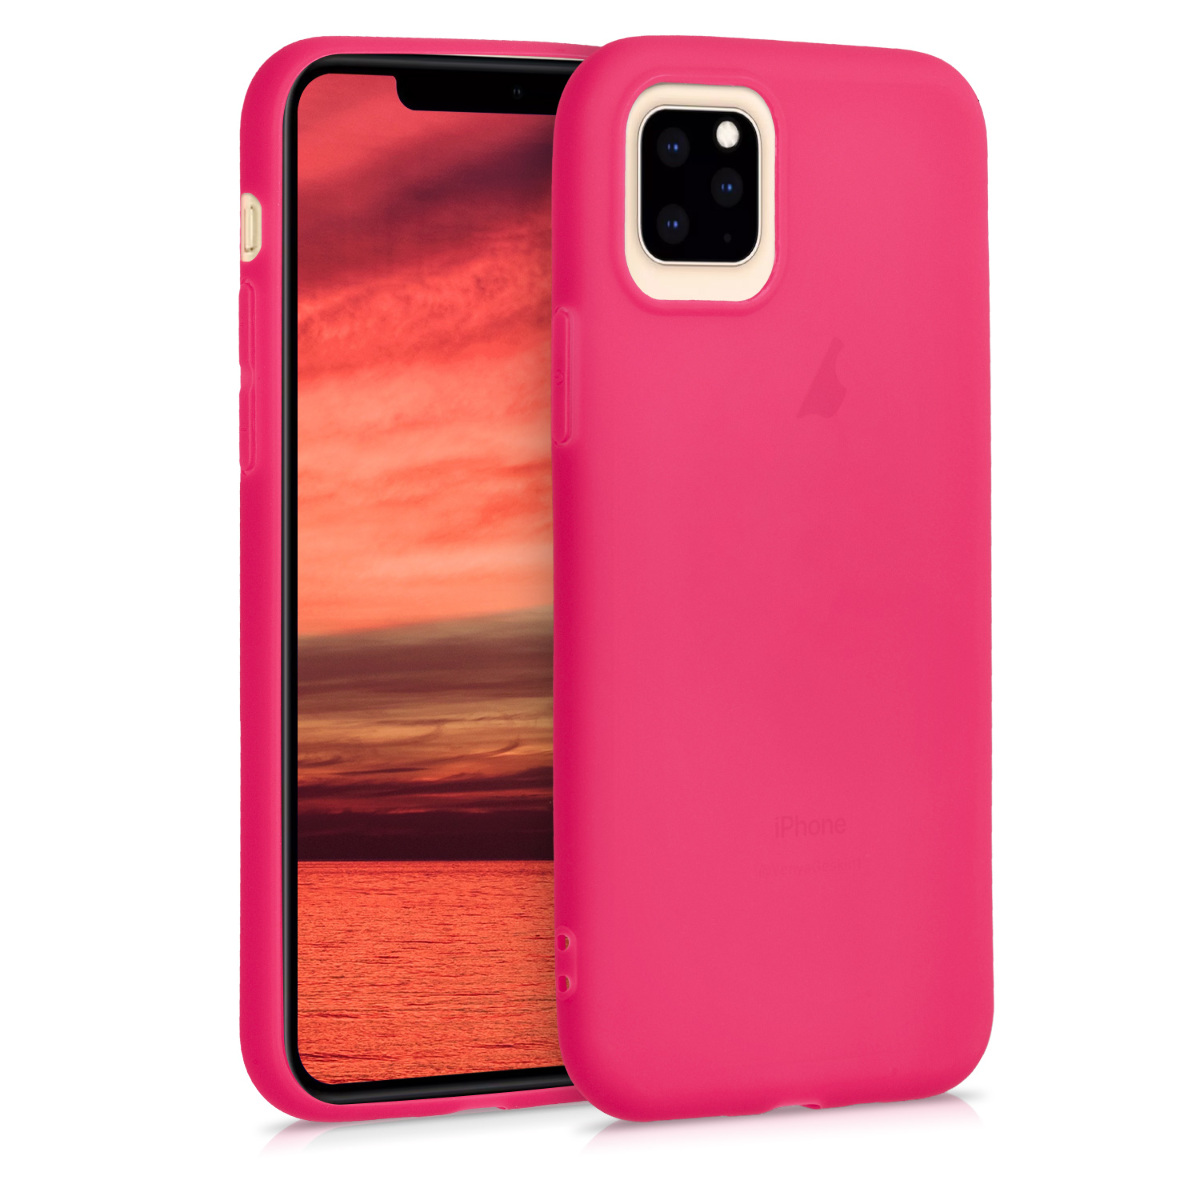 KW Θήκη Σιλικόνης Apple iPhone 11 Pro - Soft Flexible Shock Absorbent - Neon Pink (49781.77)